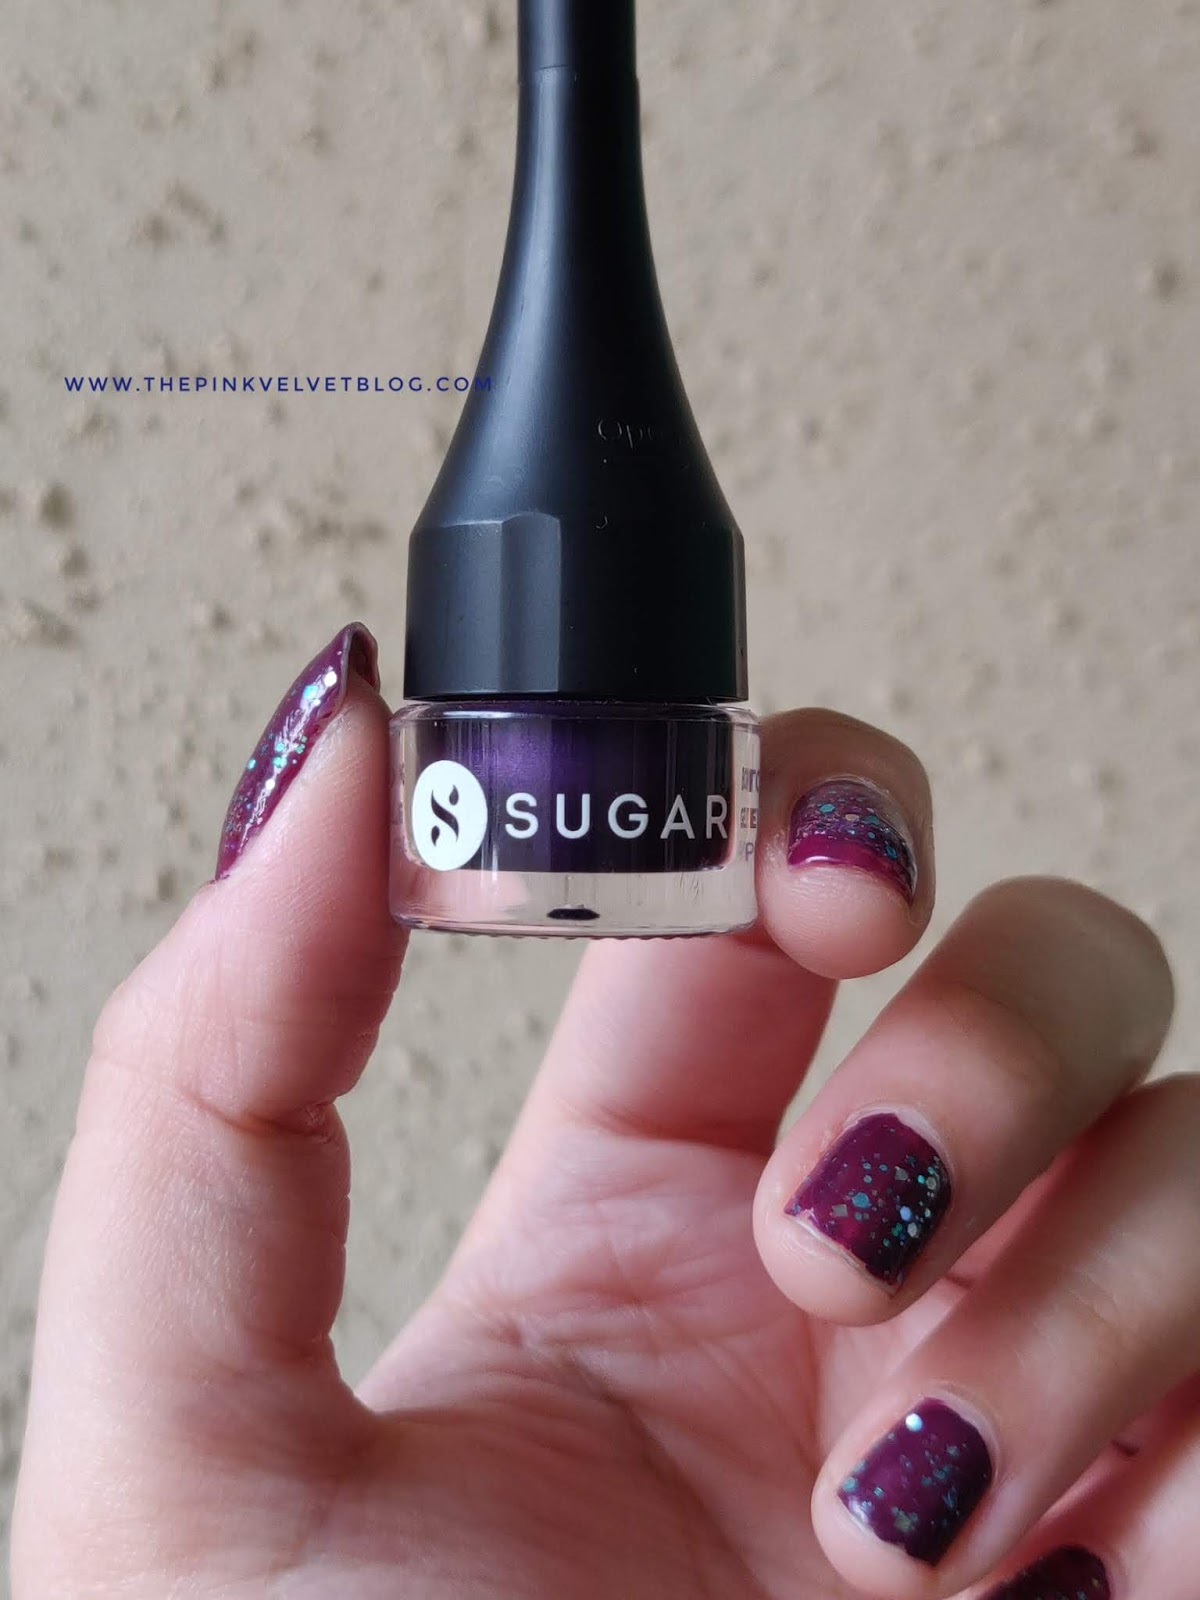 SUGAR Born to Wing Gel Eyeliner - Review and Swatches (All 5 Shades) - Purple Haze